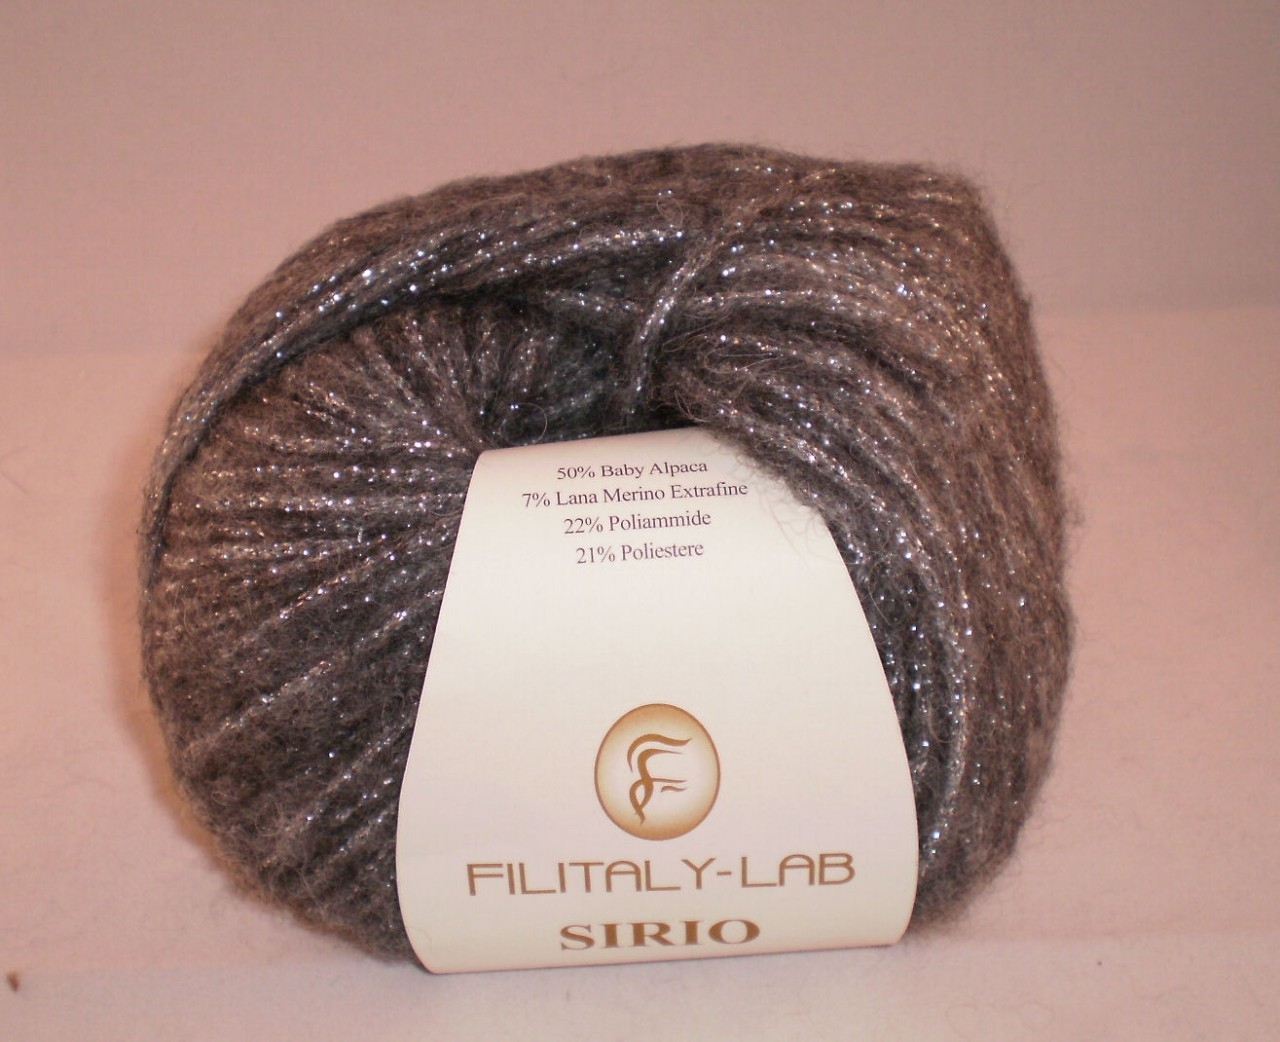 Sirio by Filitaly-Lab in Shade 20312 (dark grey and silver)